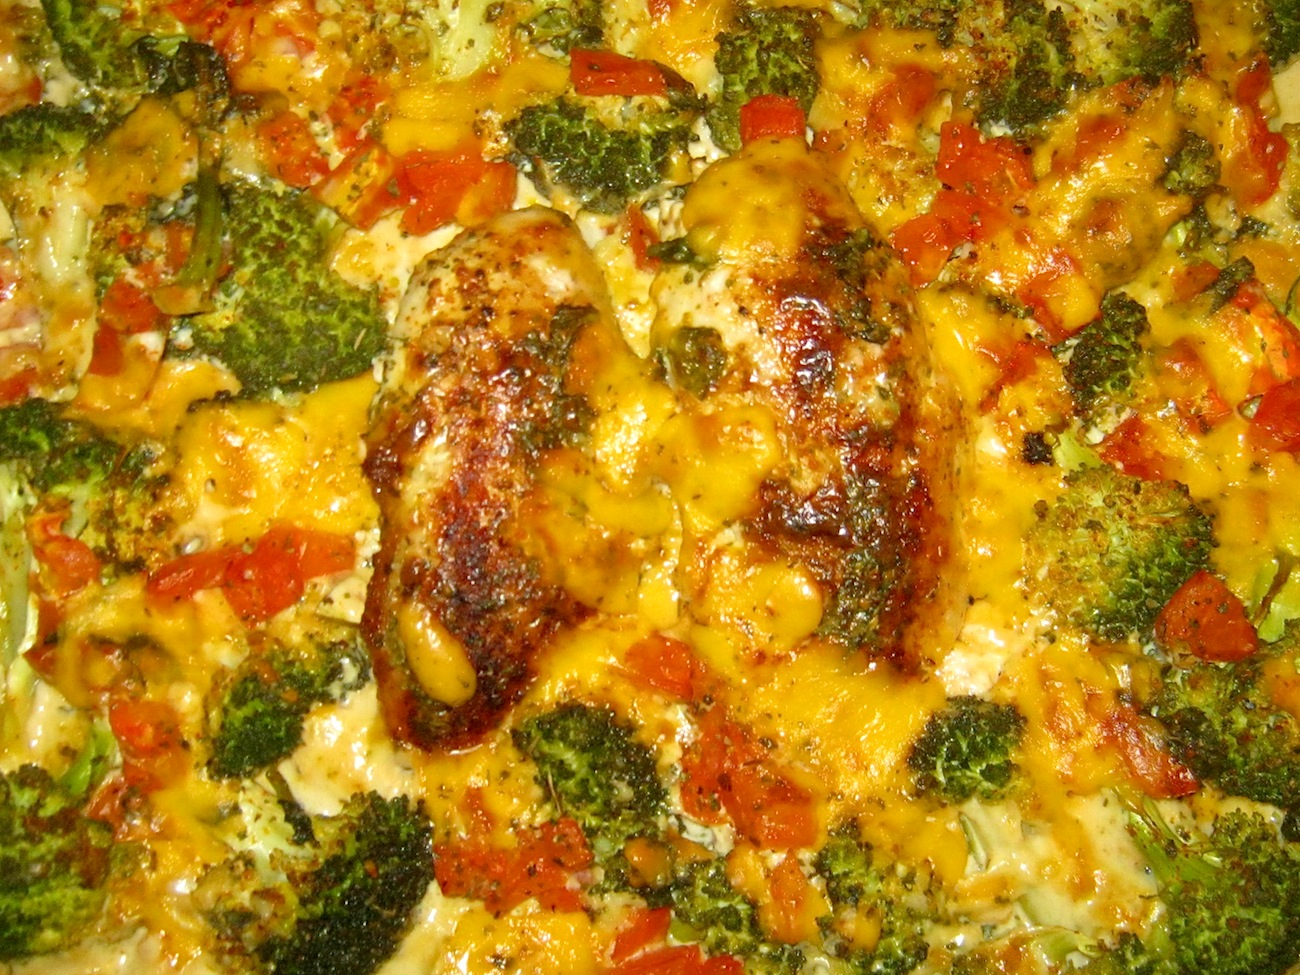 Baked Broccoli Chicken Casserole with Cream and Cheese Sauce